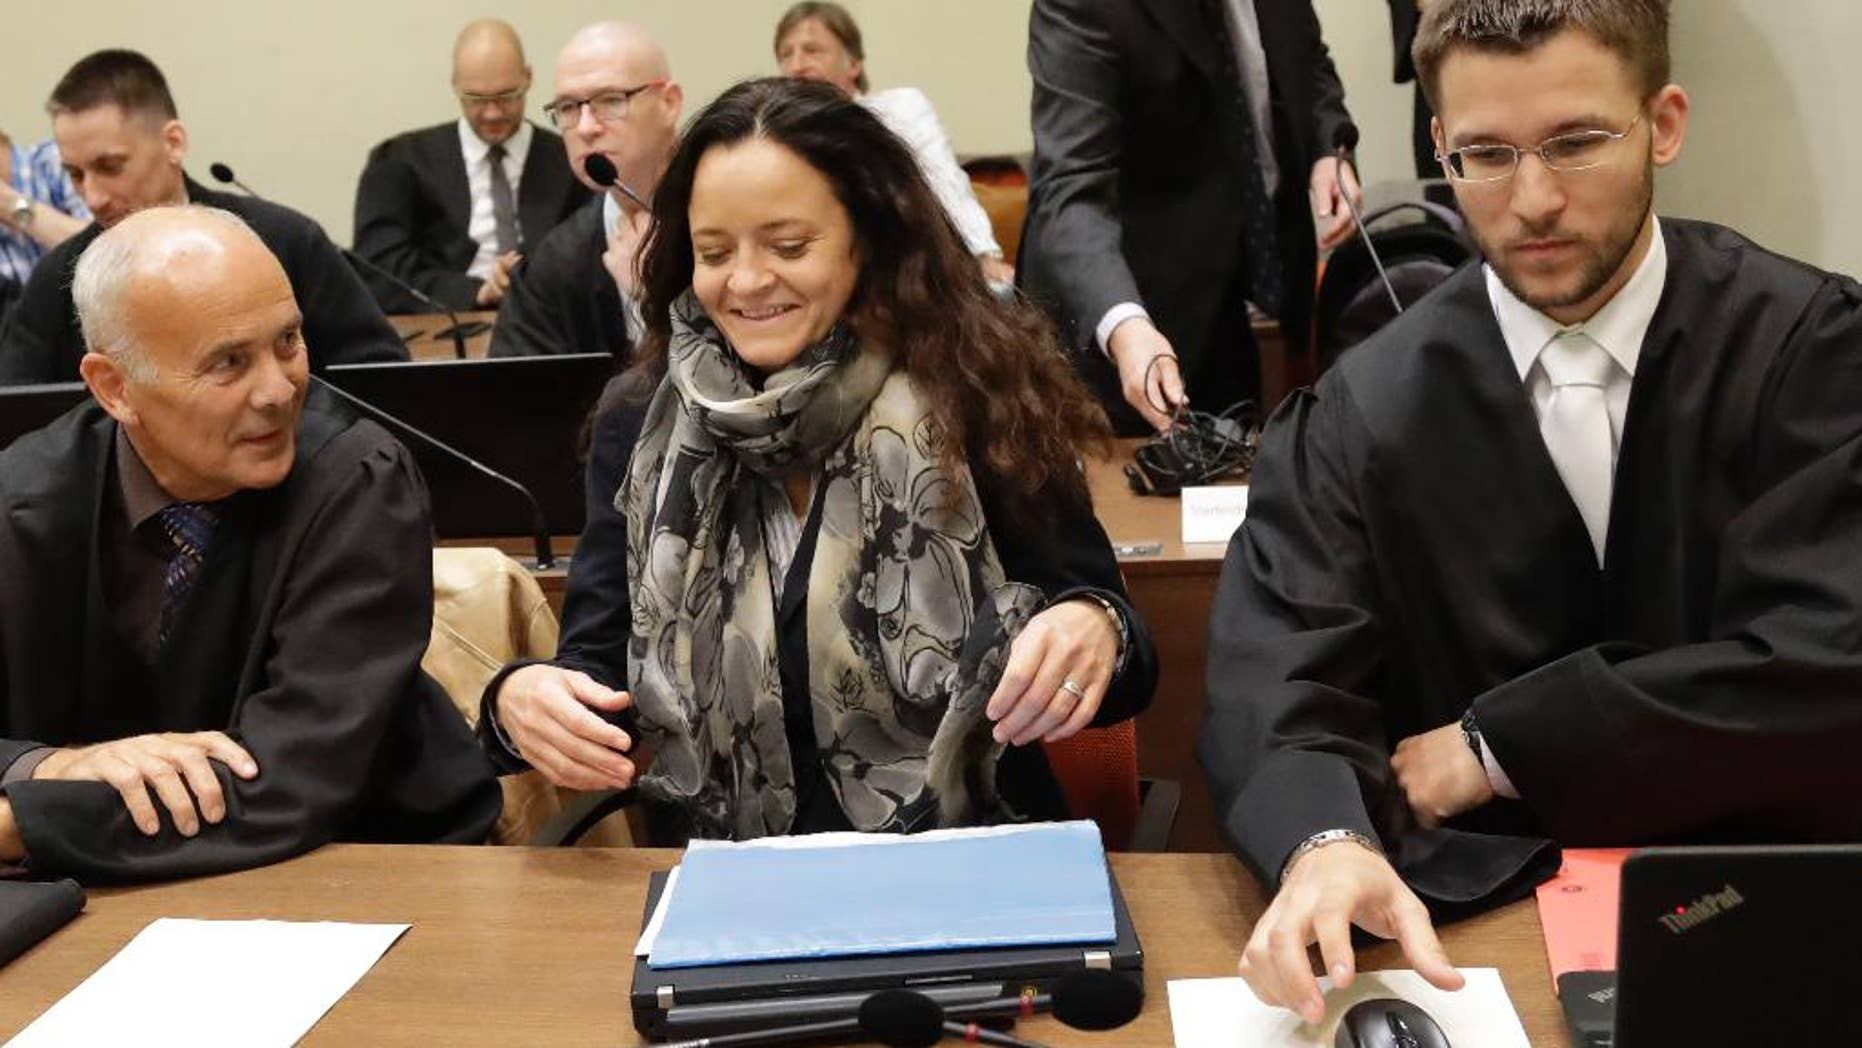 Terror suspect Beate Zschaepe arrives at the court room besides her lawyers Hermann Borchert, left, and Mathias Grasel in Munich, Germany, Thursday, Sept. 29, 2016. Zschaepe is accused of being involved in 10 neo-Nazi murders of the National Socialist Underground group, which allegedly killed eight Turkish men, a Greek and a policewoman between 2000 and 2007. (AP Photo/Matthias Schrader)